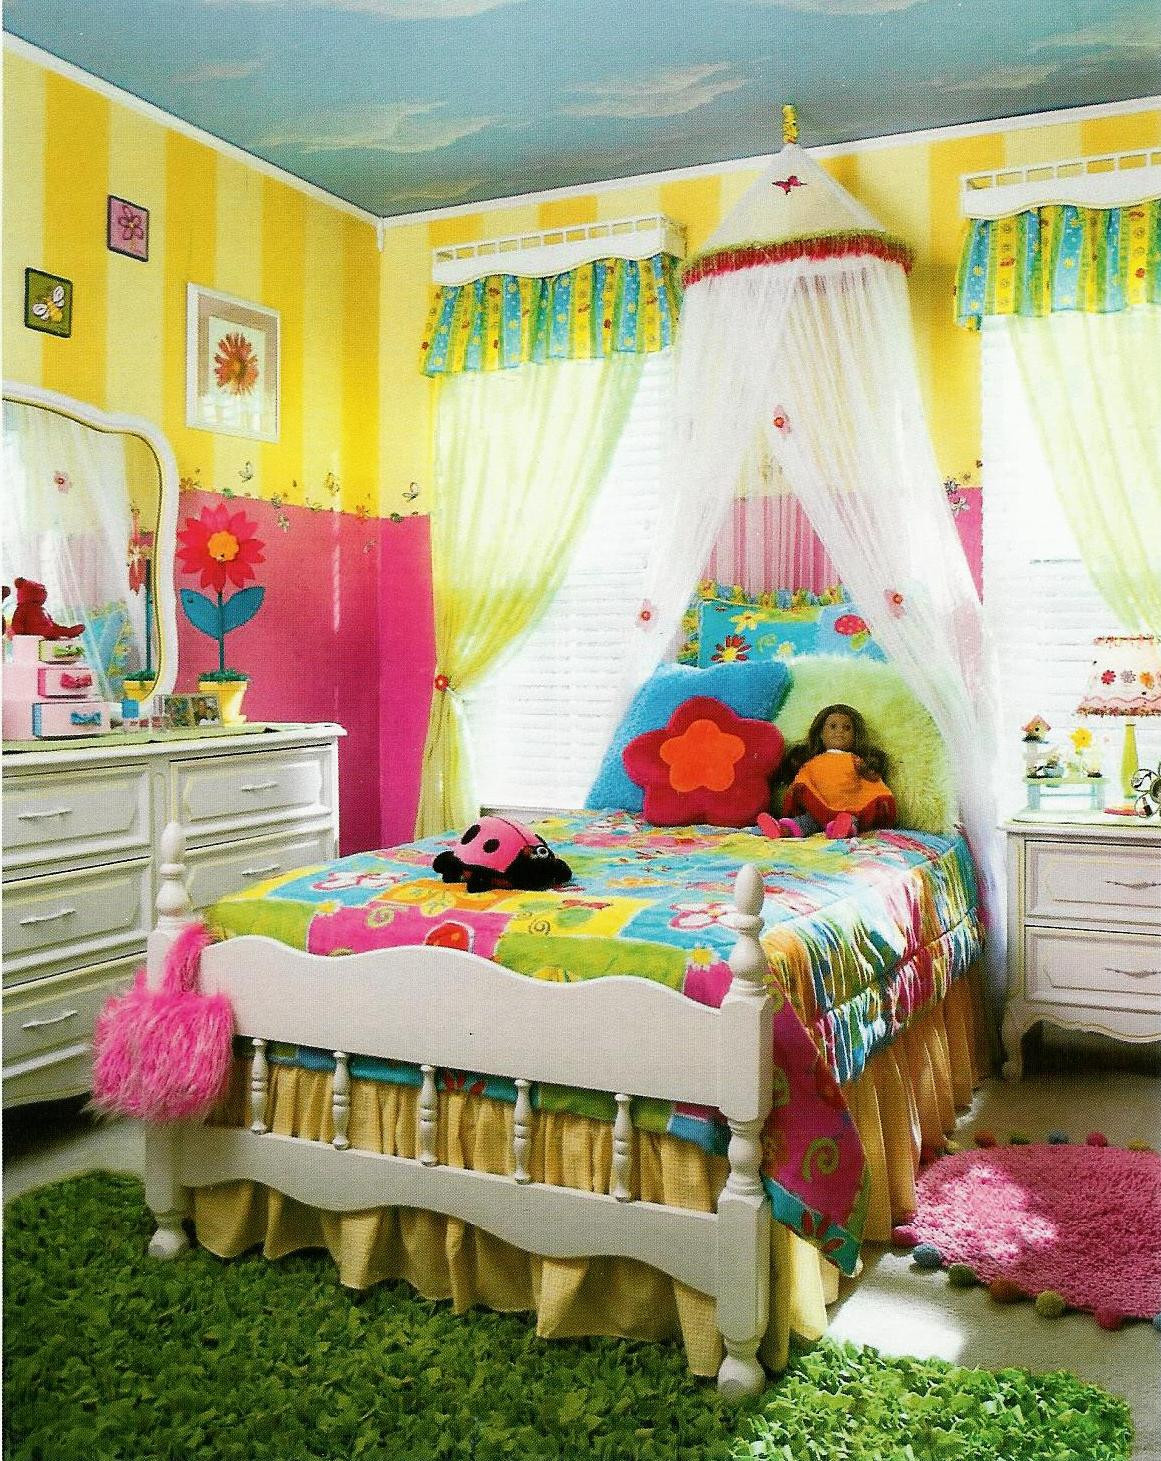 Best ideas about Kids Room Decor . Save or Pin kids rooms decorations 2017 Grasscloth Wallpaper Now.